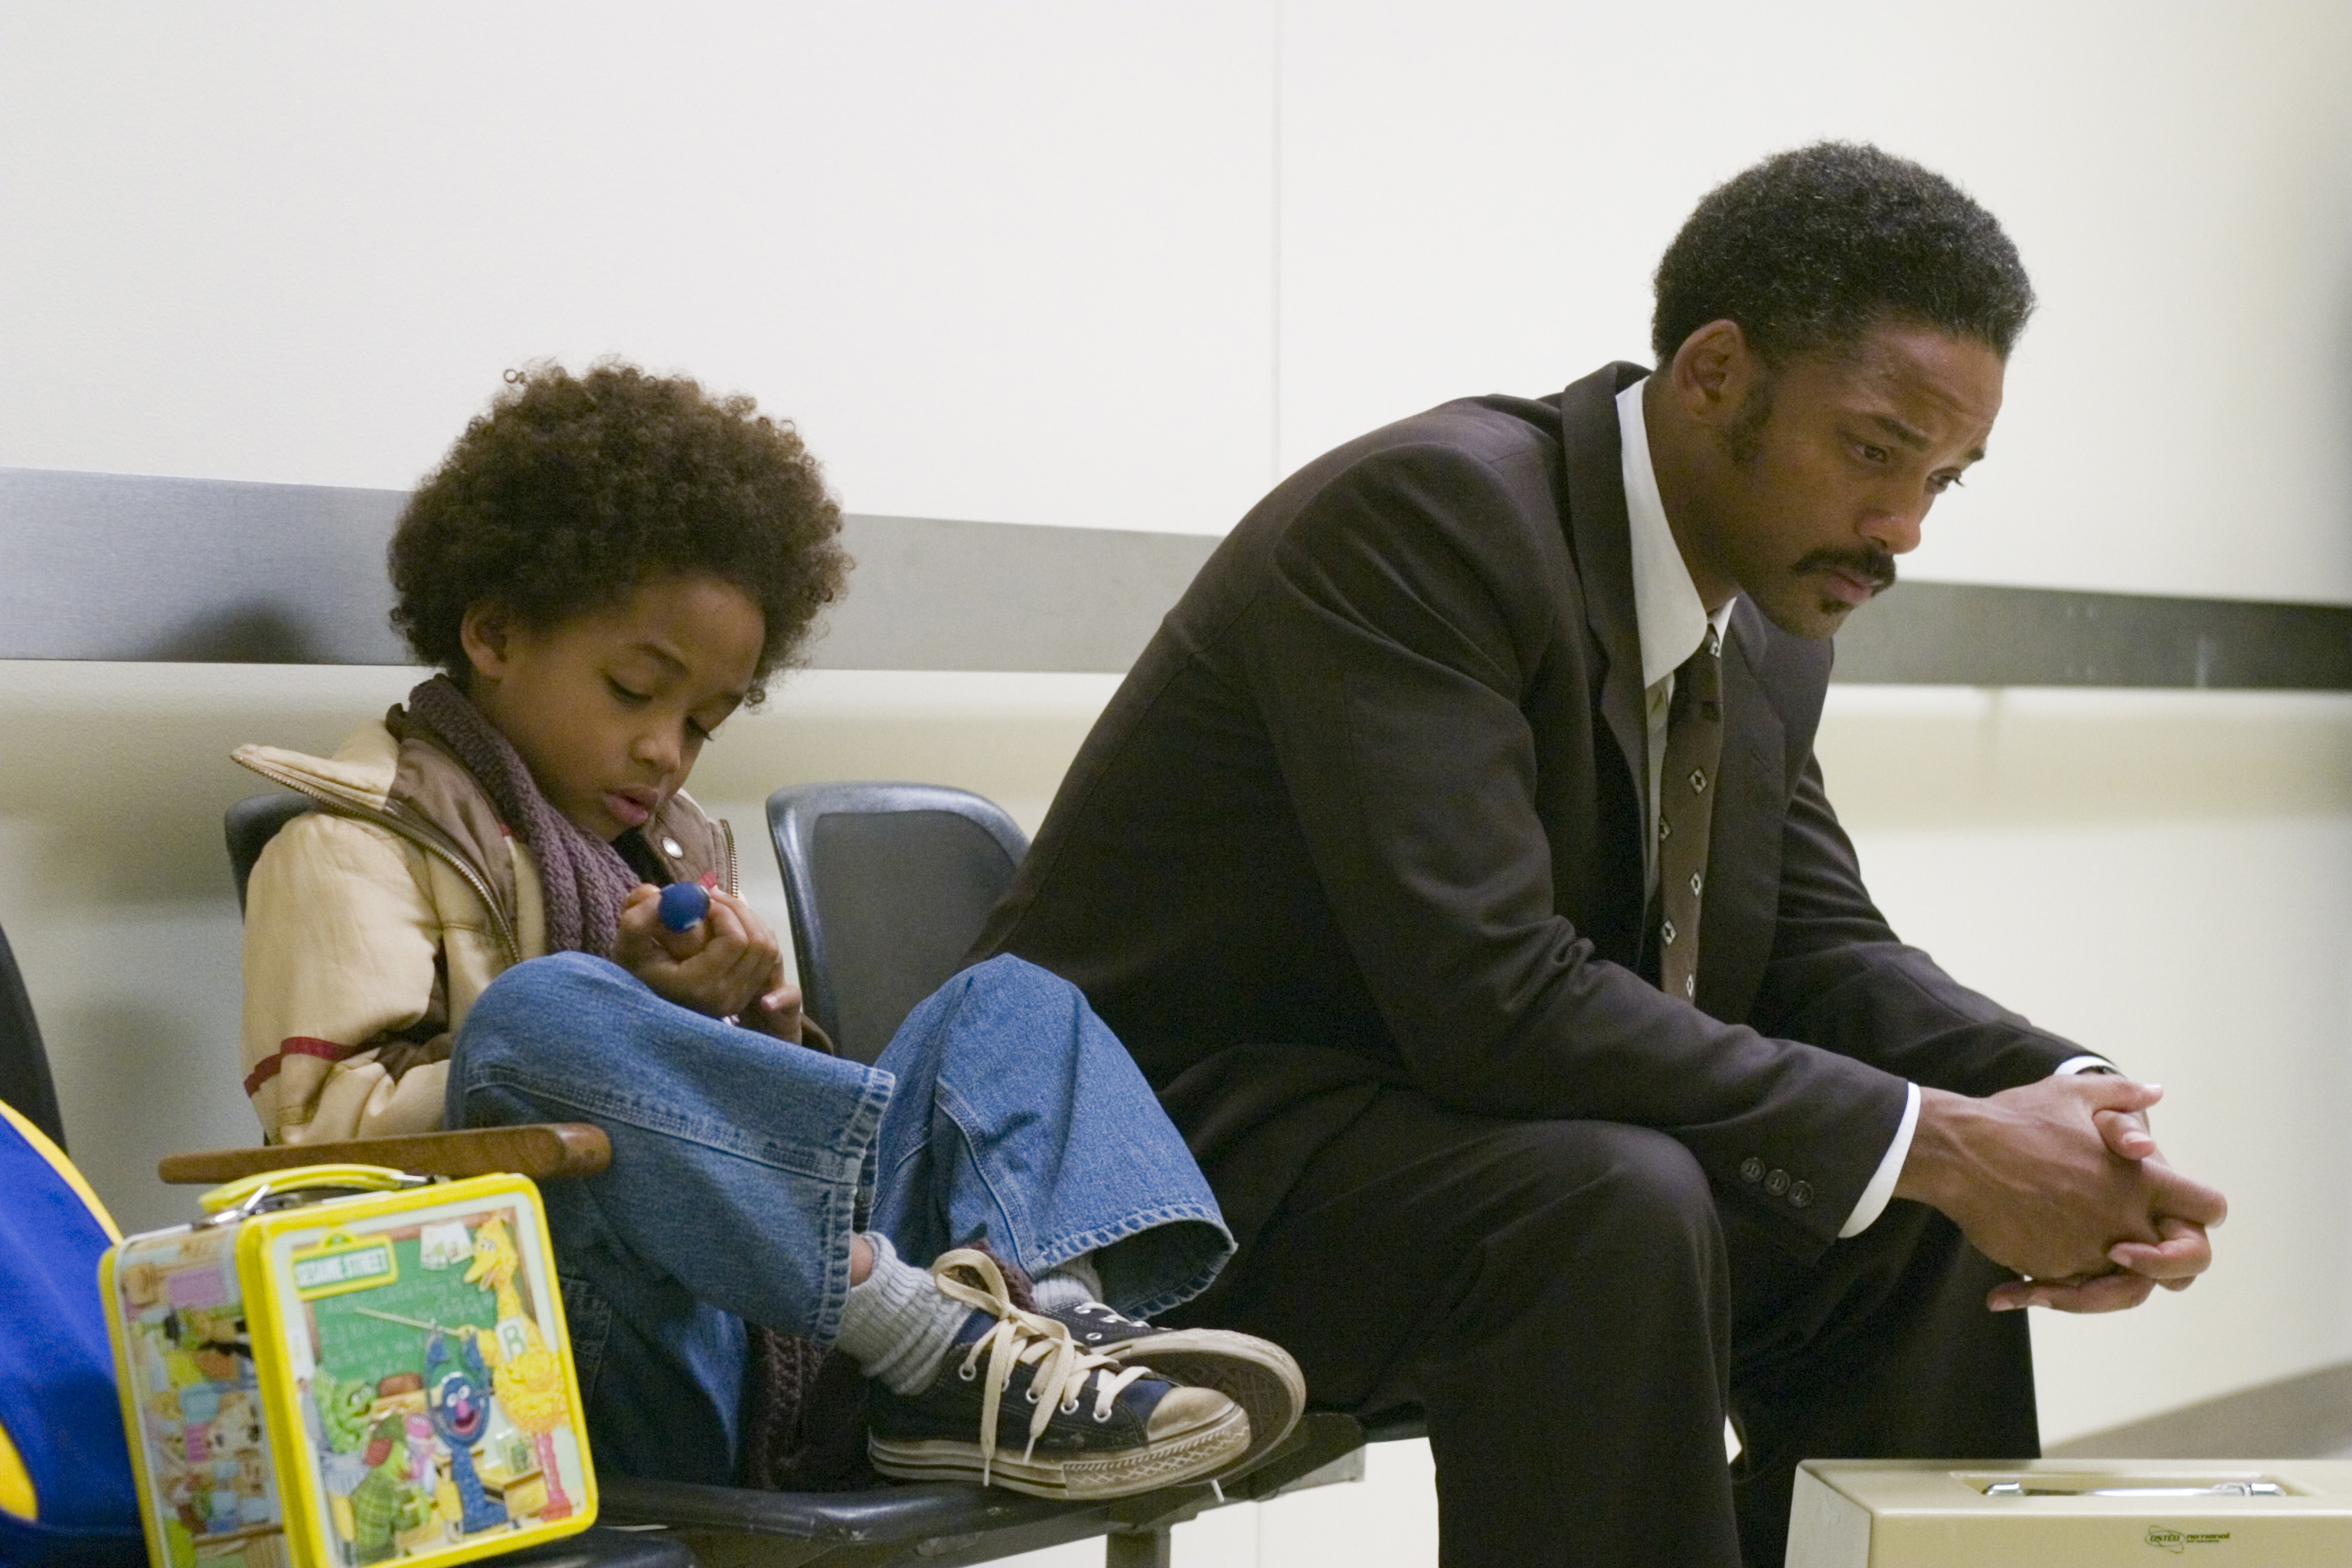 Resultado de imagem para The Pursuit of Happyness film